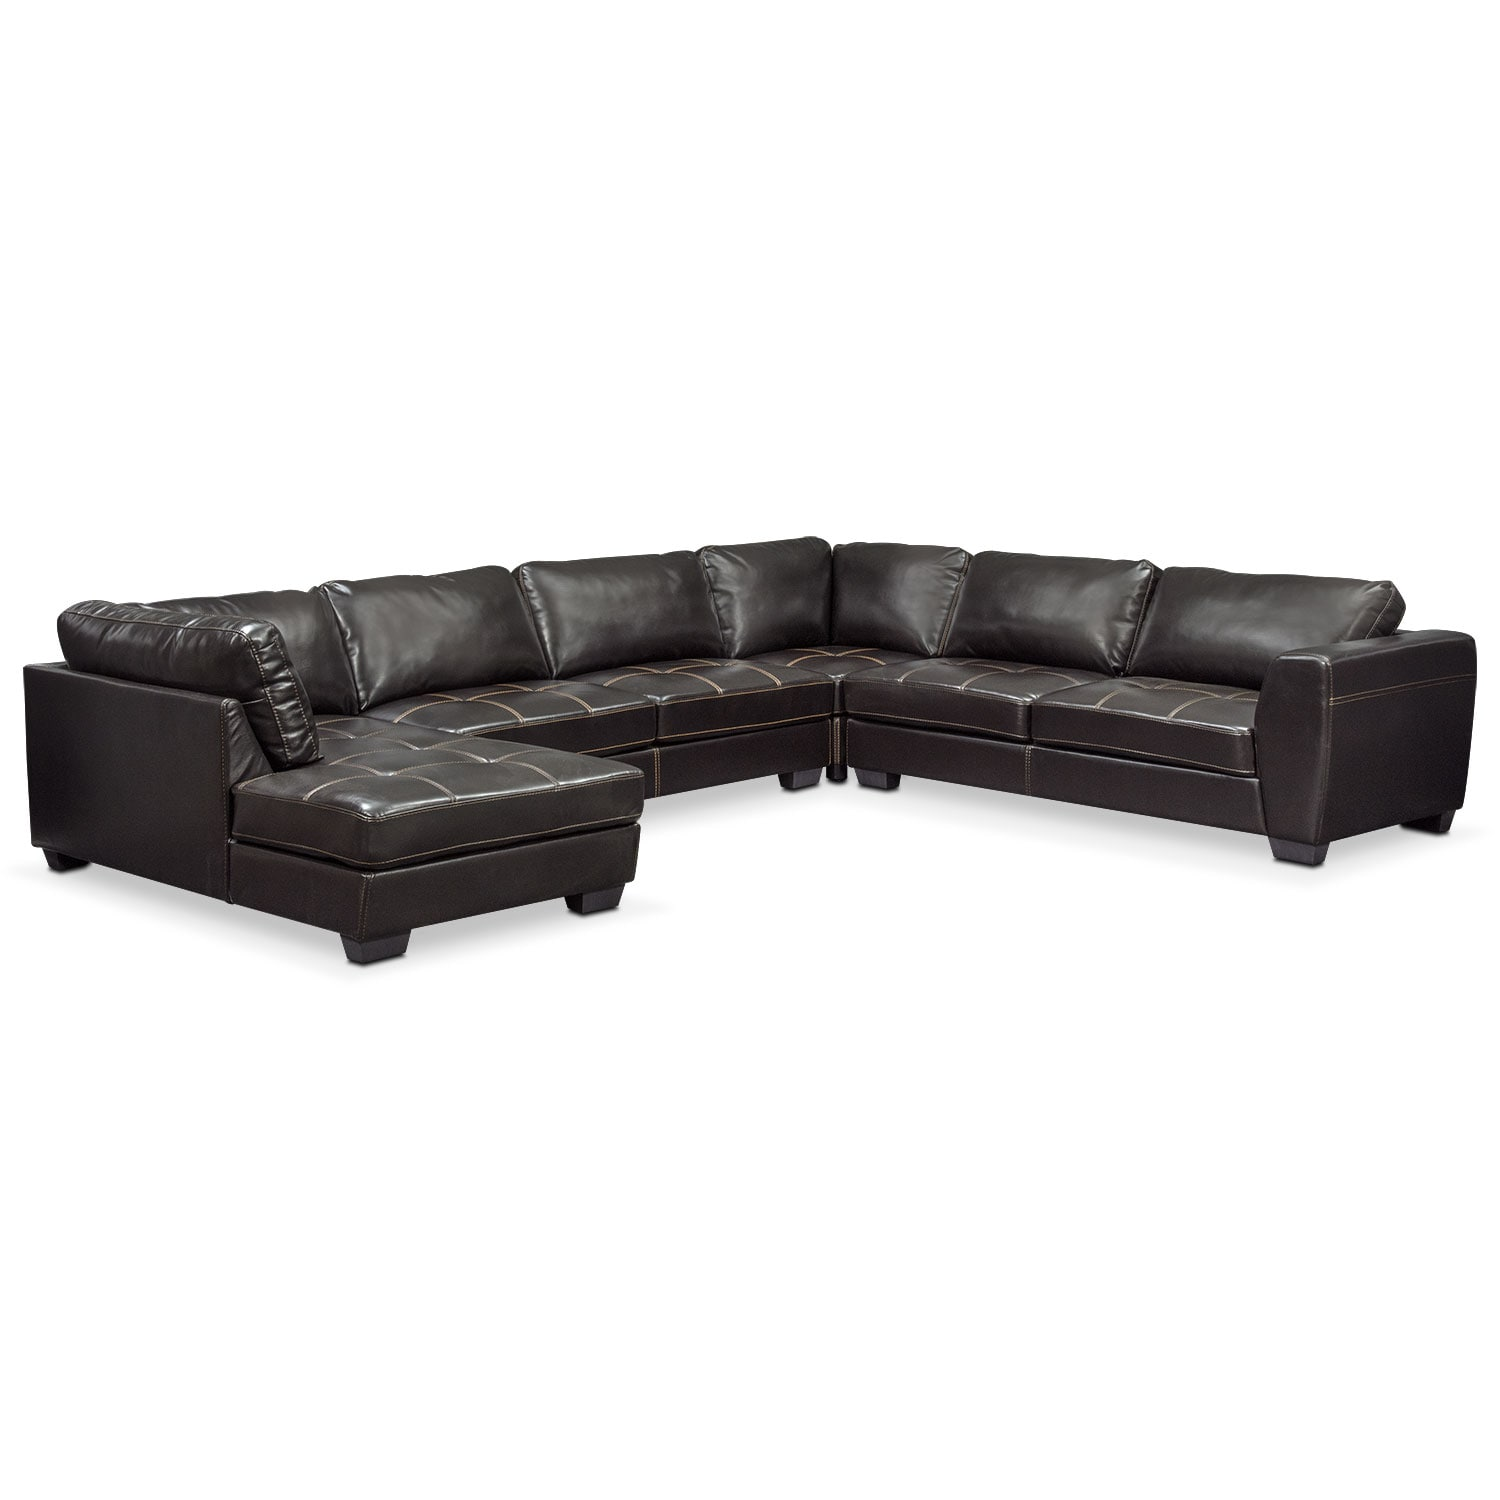 Santana 2 piece sectional with right facing chaise and for 4 piece sectional sofa with chaise